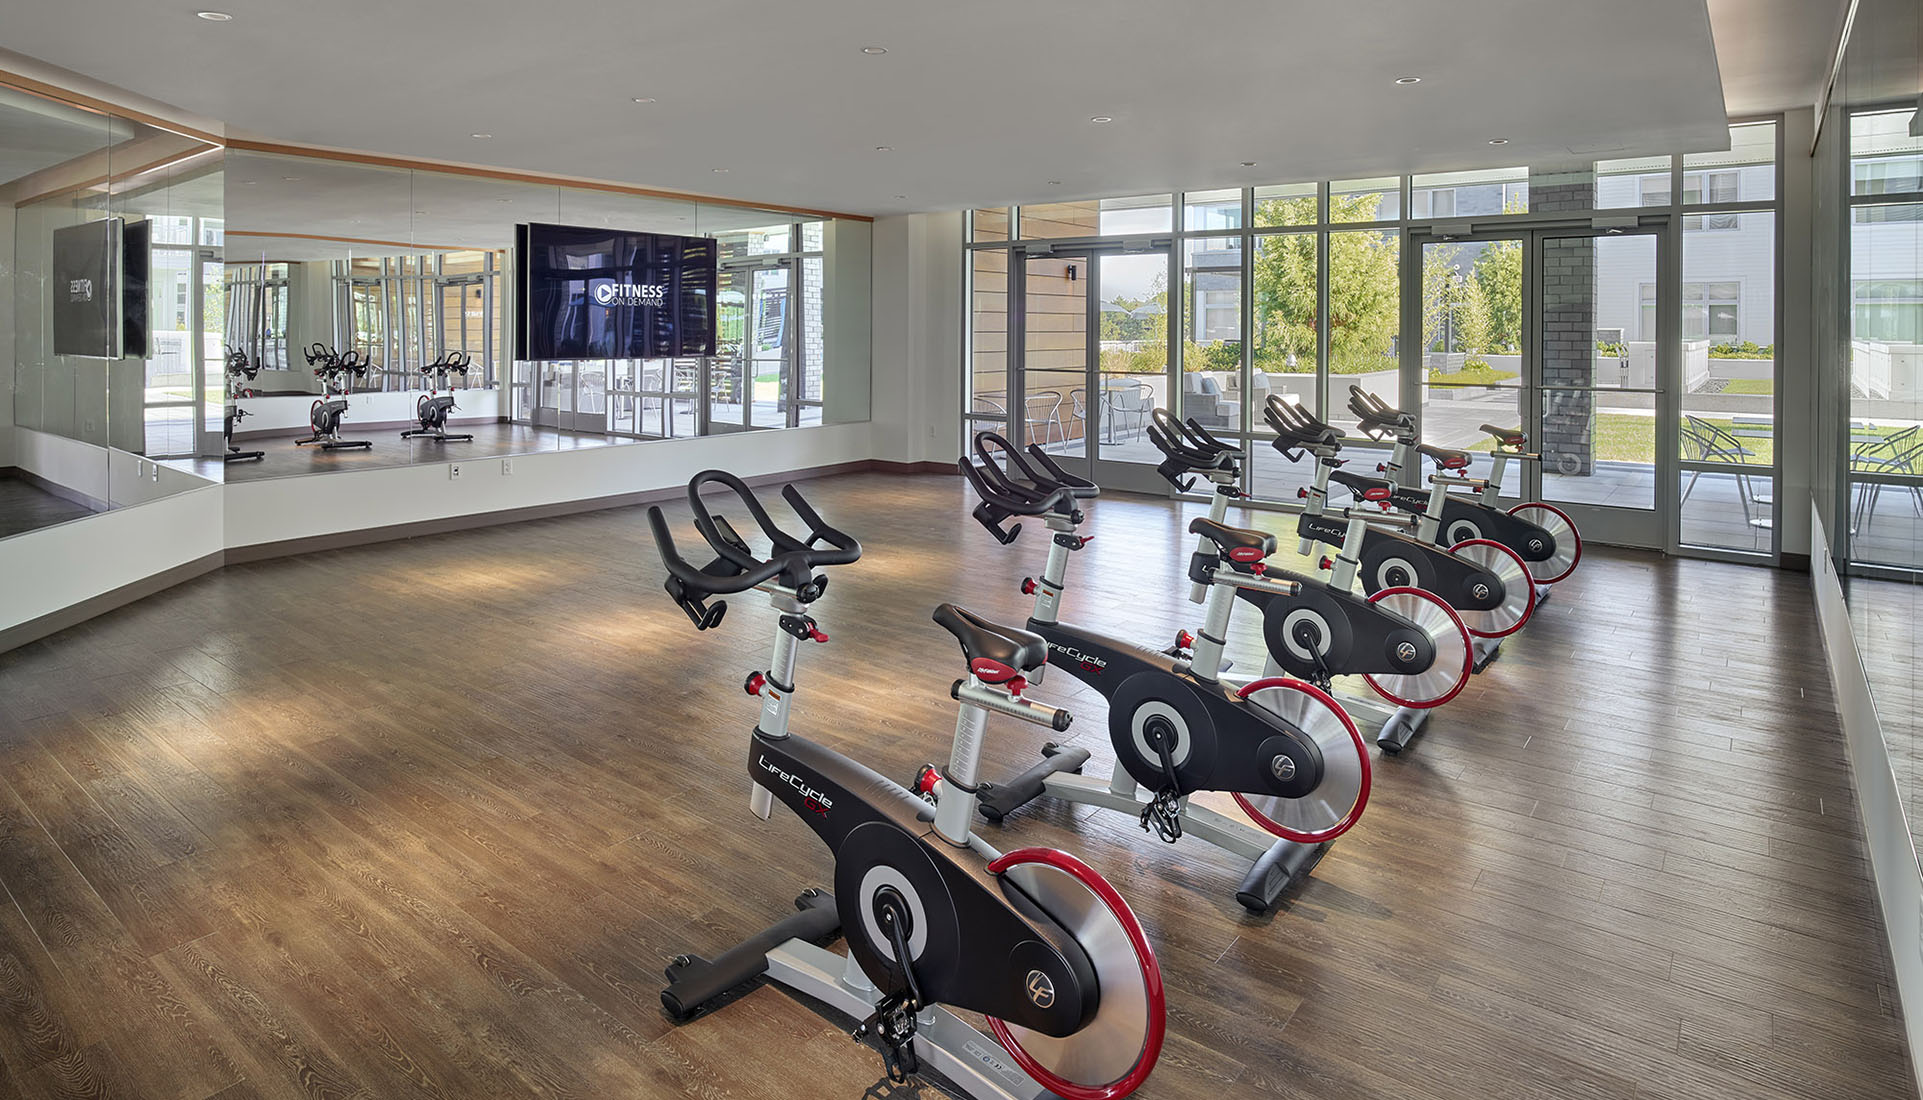 AVE Florham Park Fitness studio space with Fitness OnDemand and spin bikes